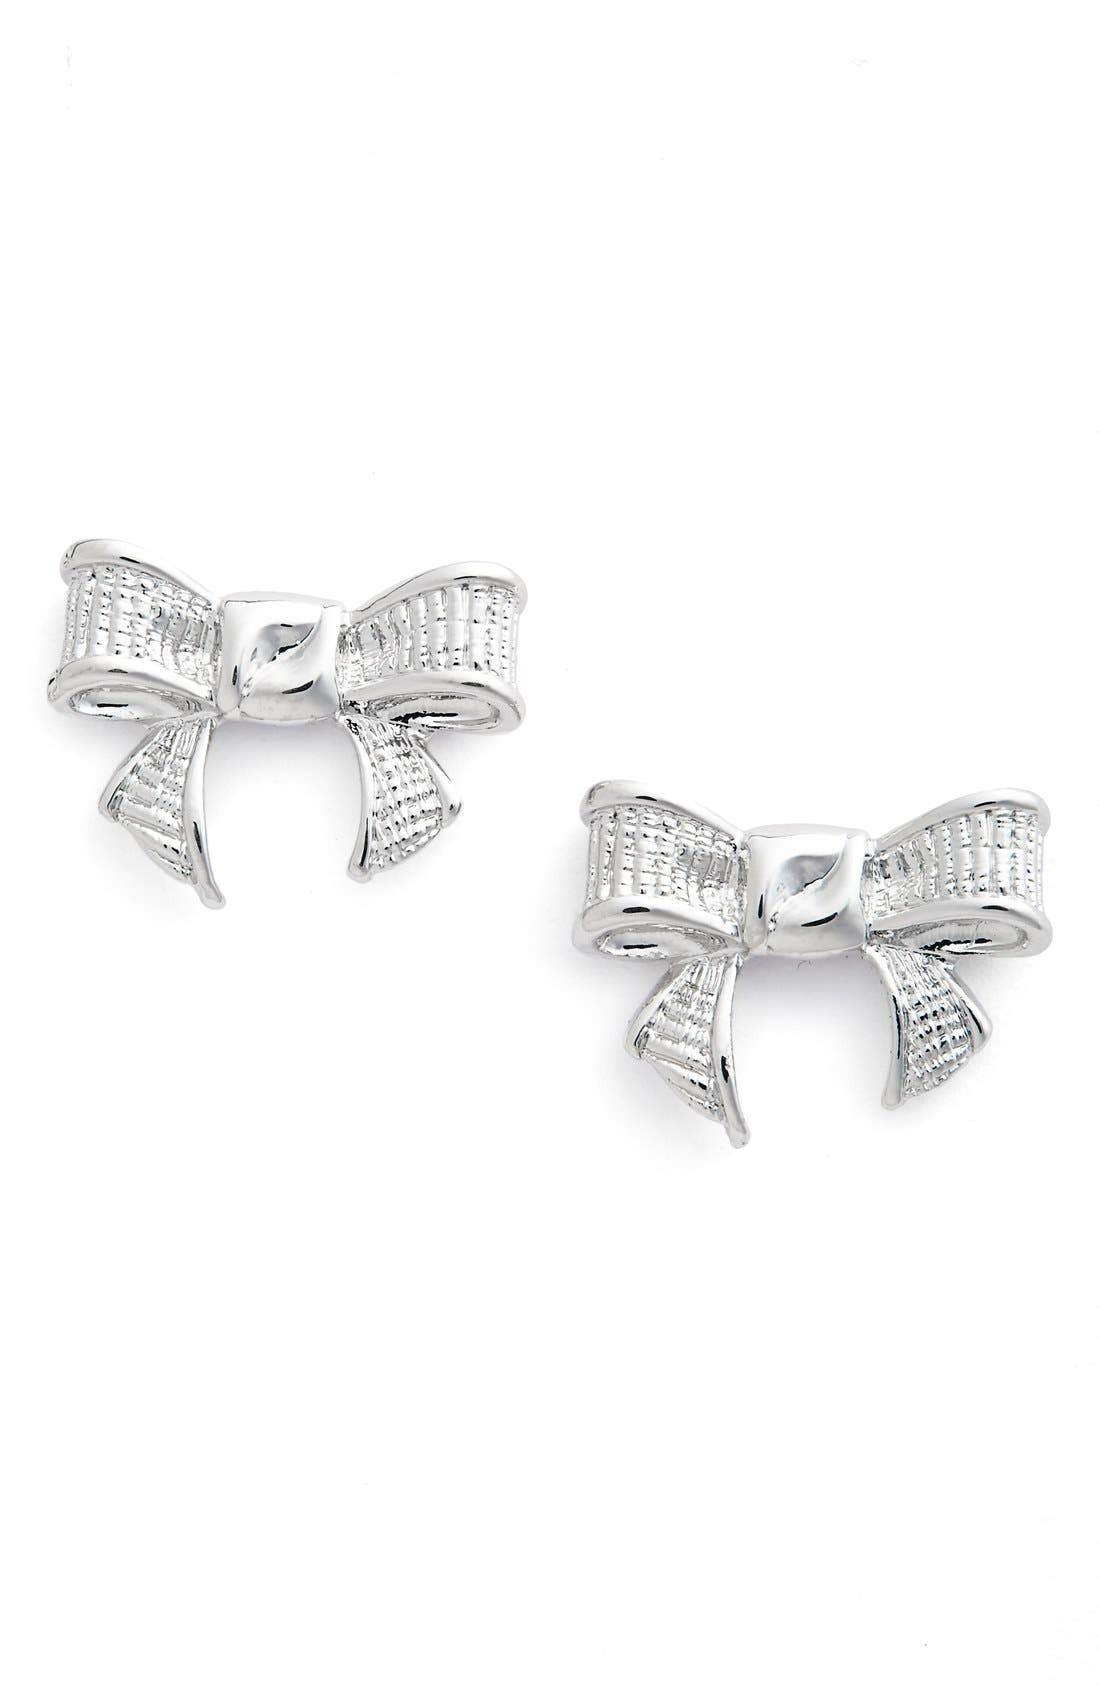 Main Image - Ted Baker London 'Glori' Bow Stud Earrings